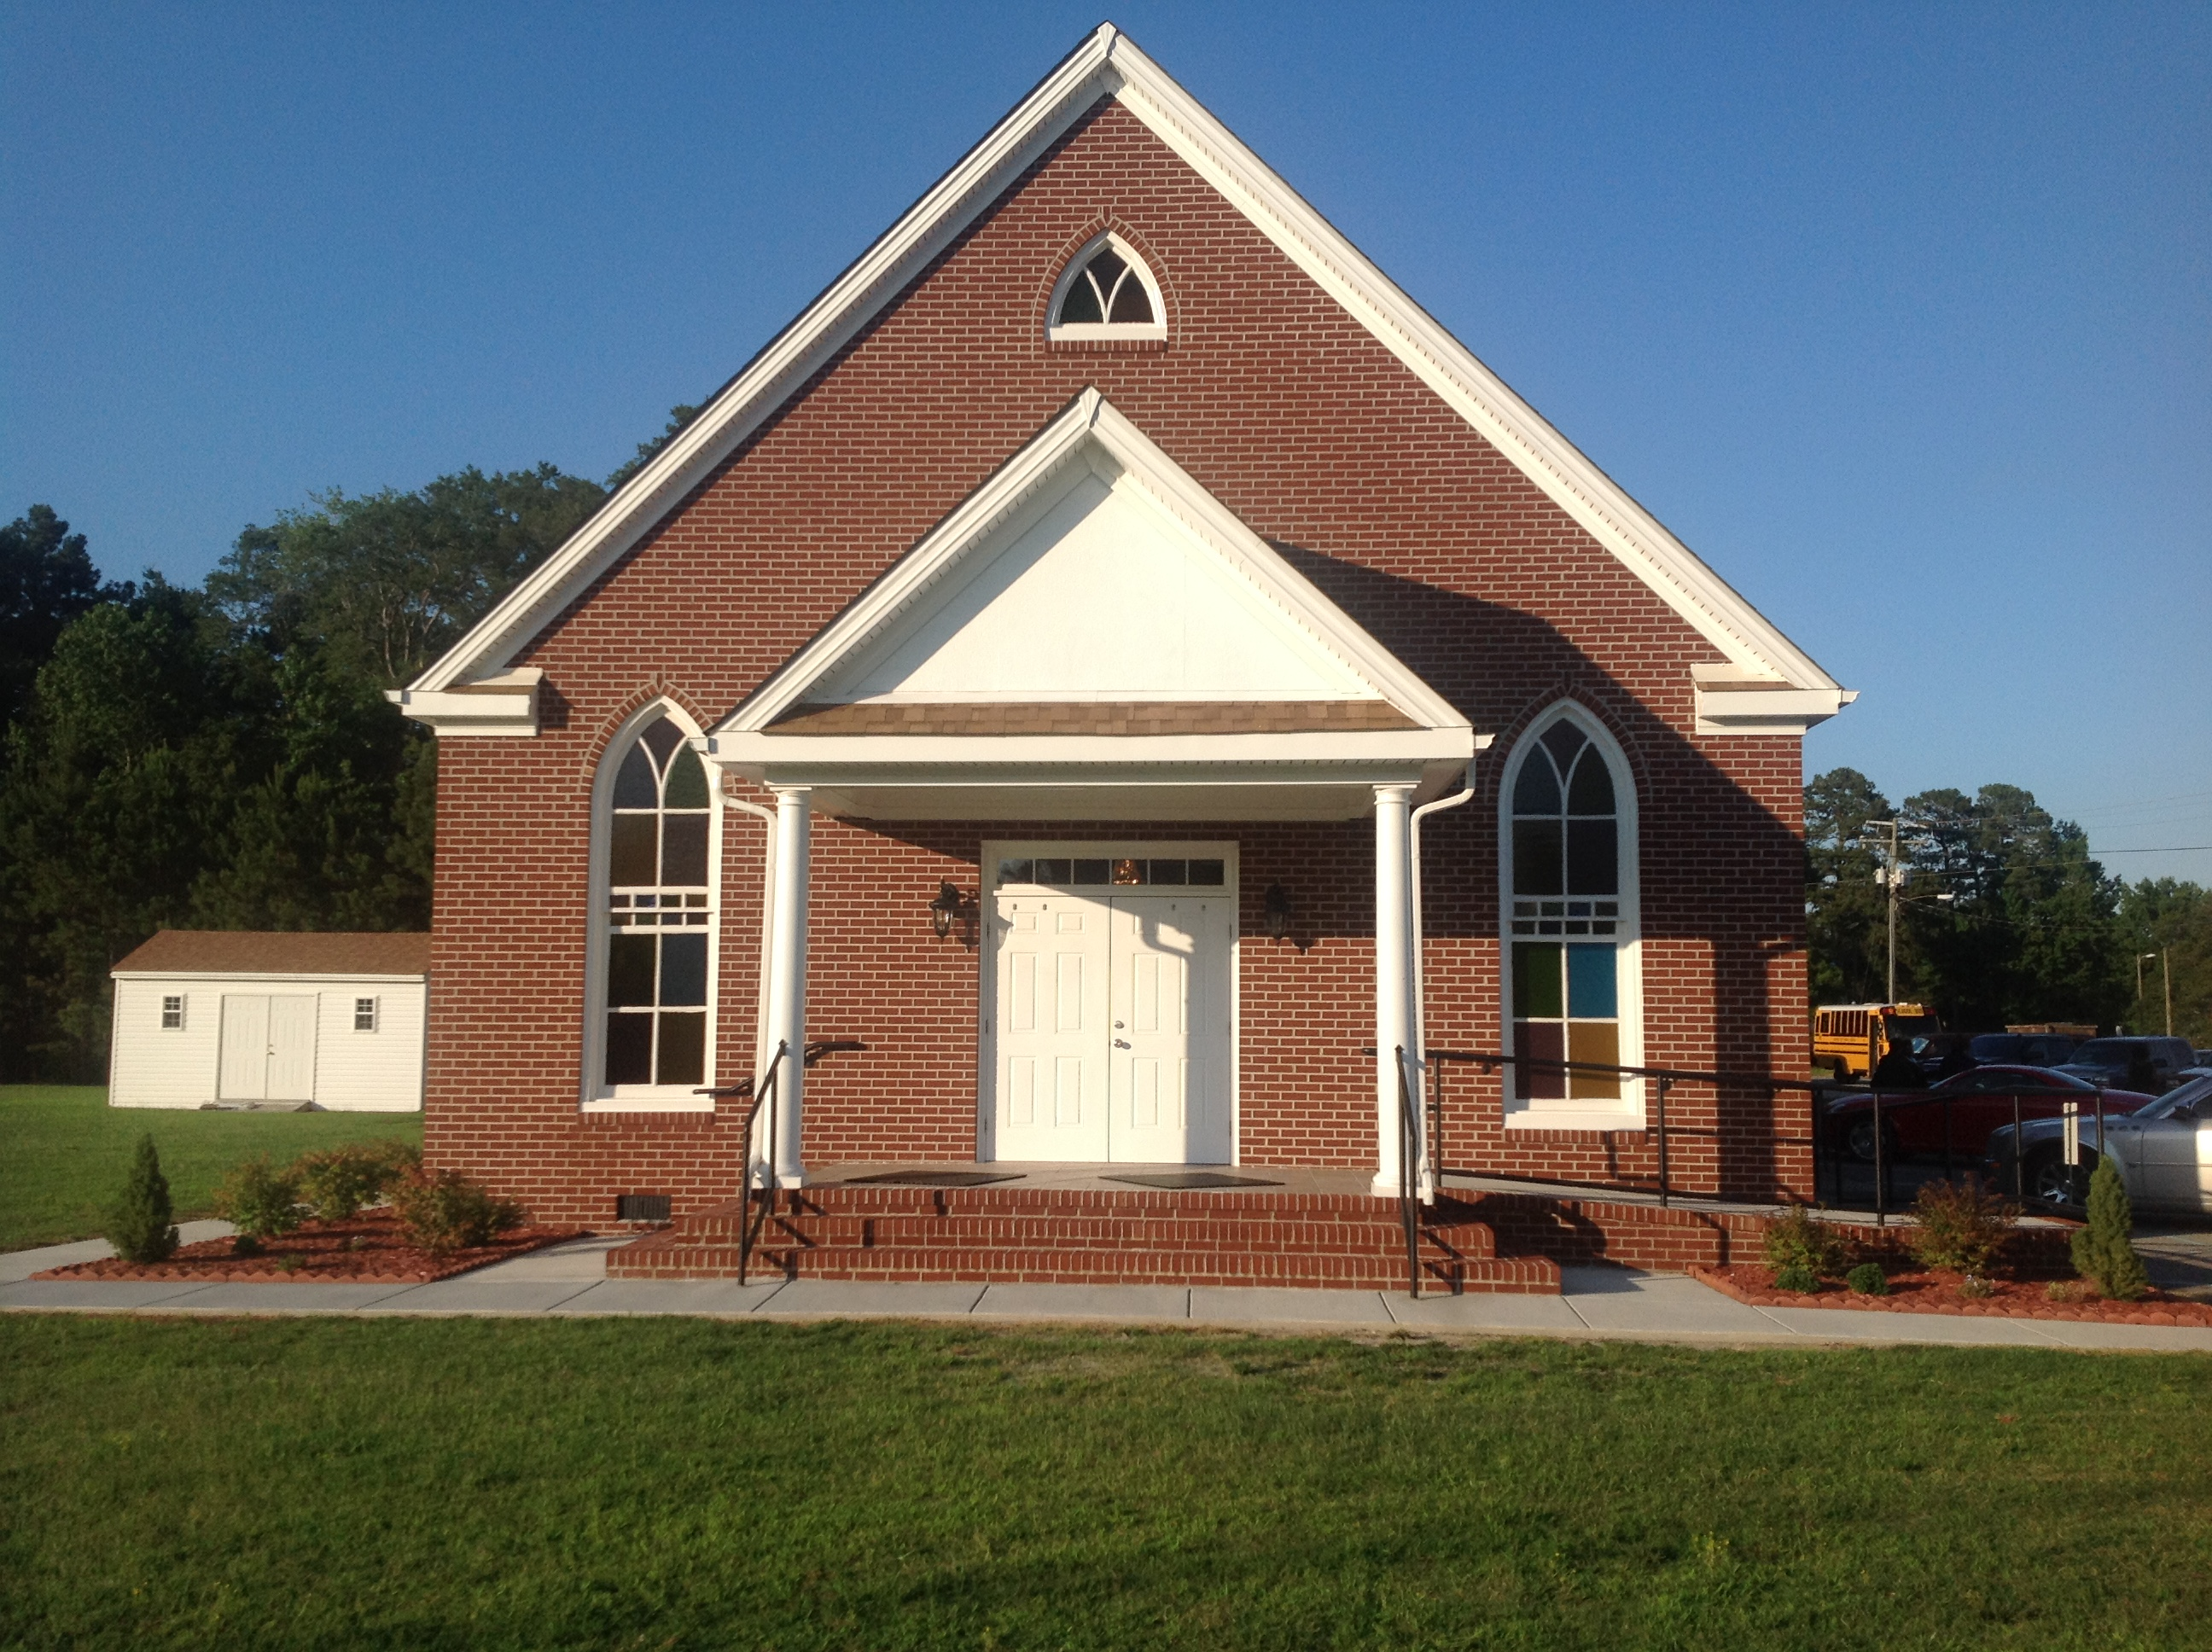 Little Mount Zion Baptist Church